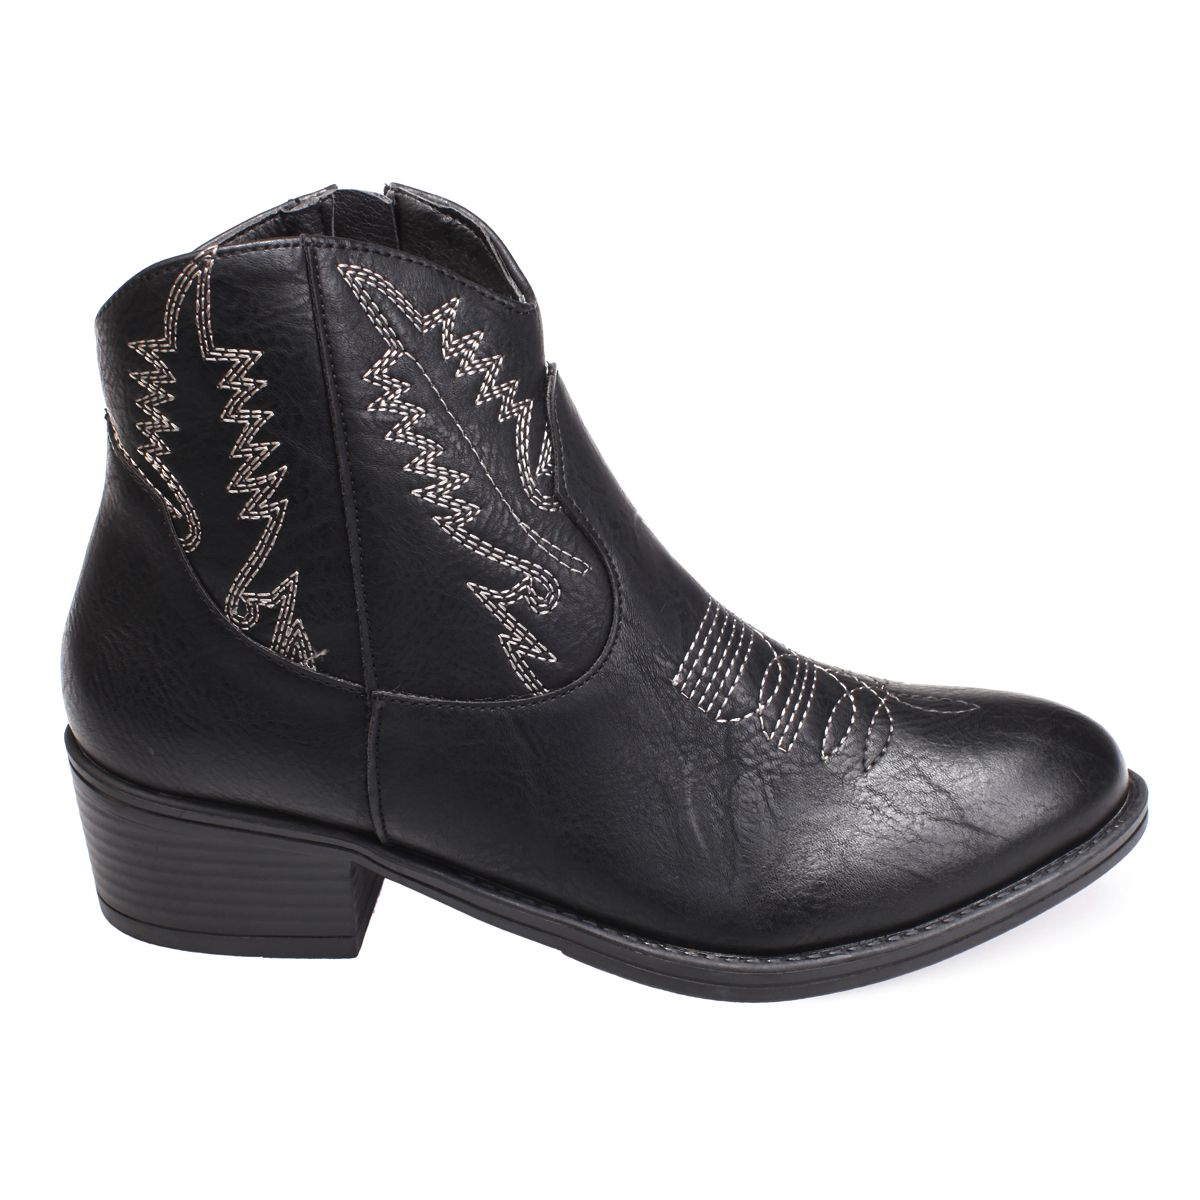 Bottines santiags noires